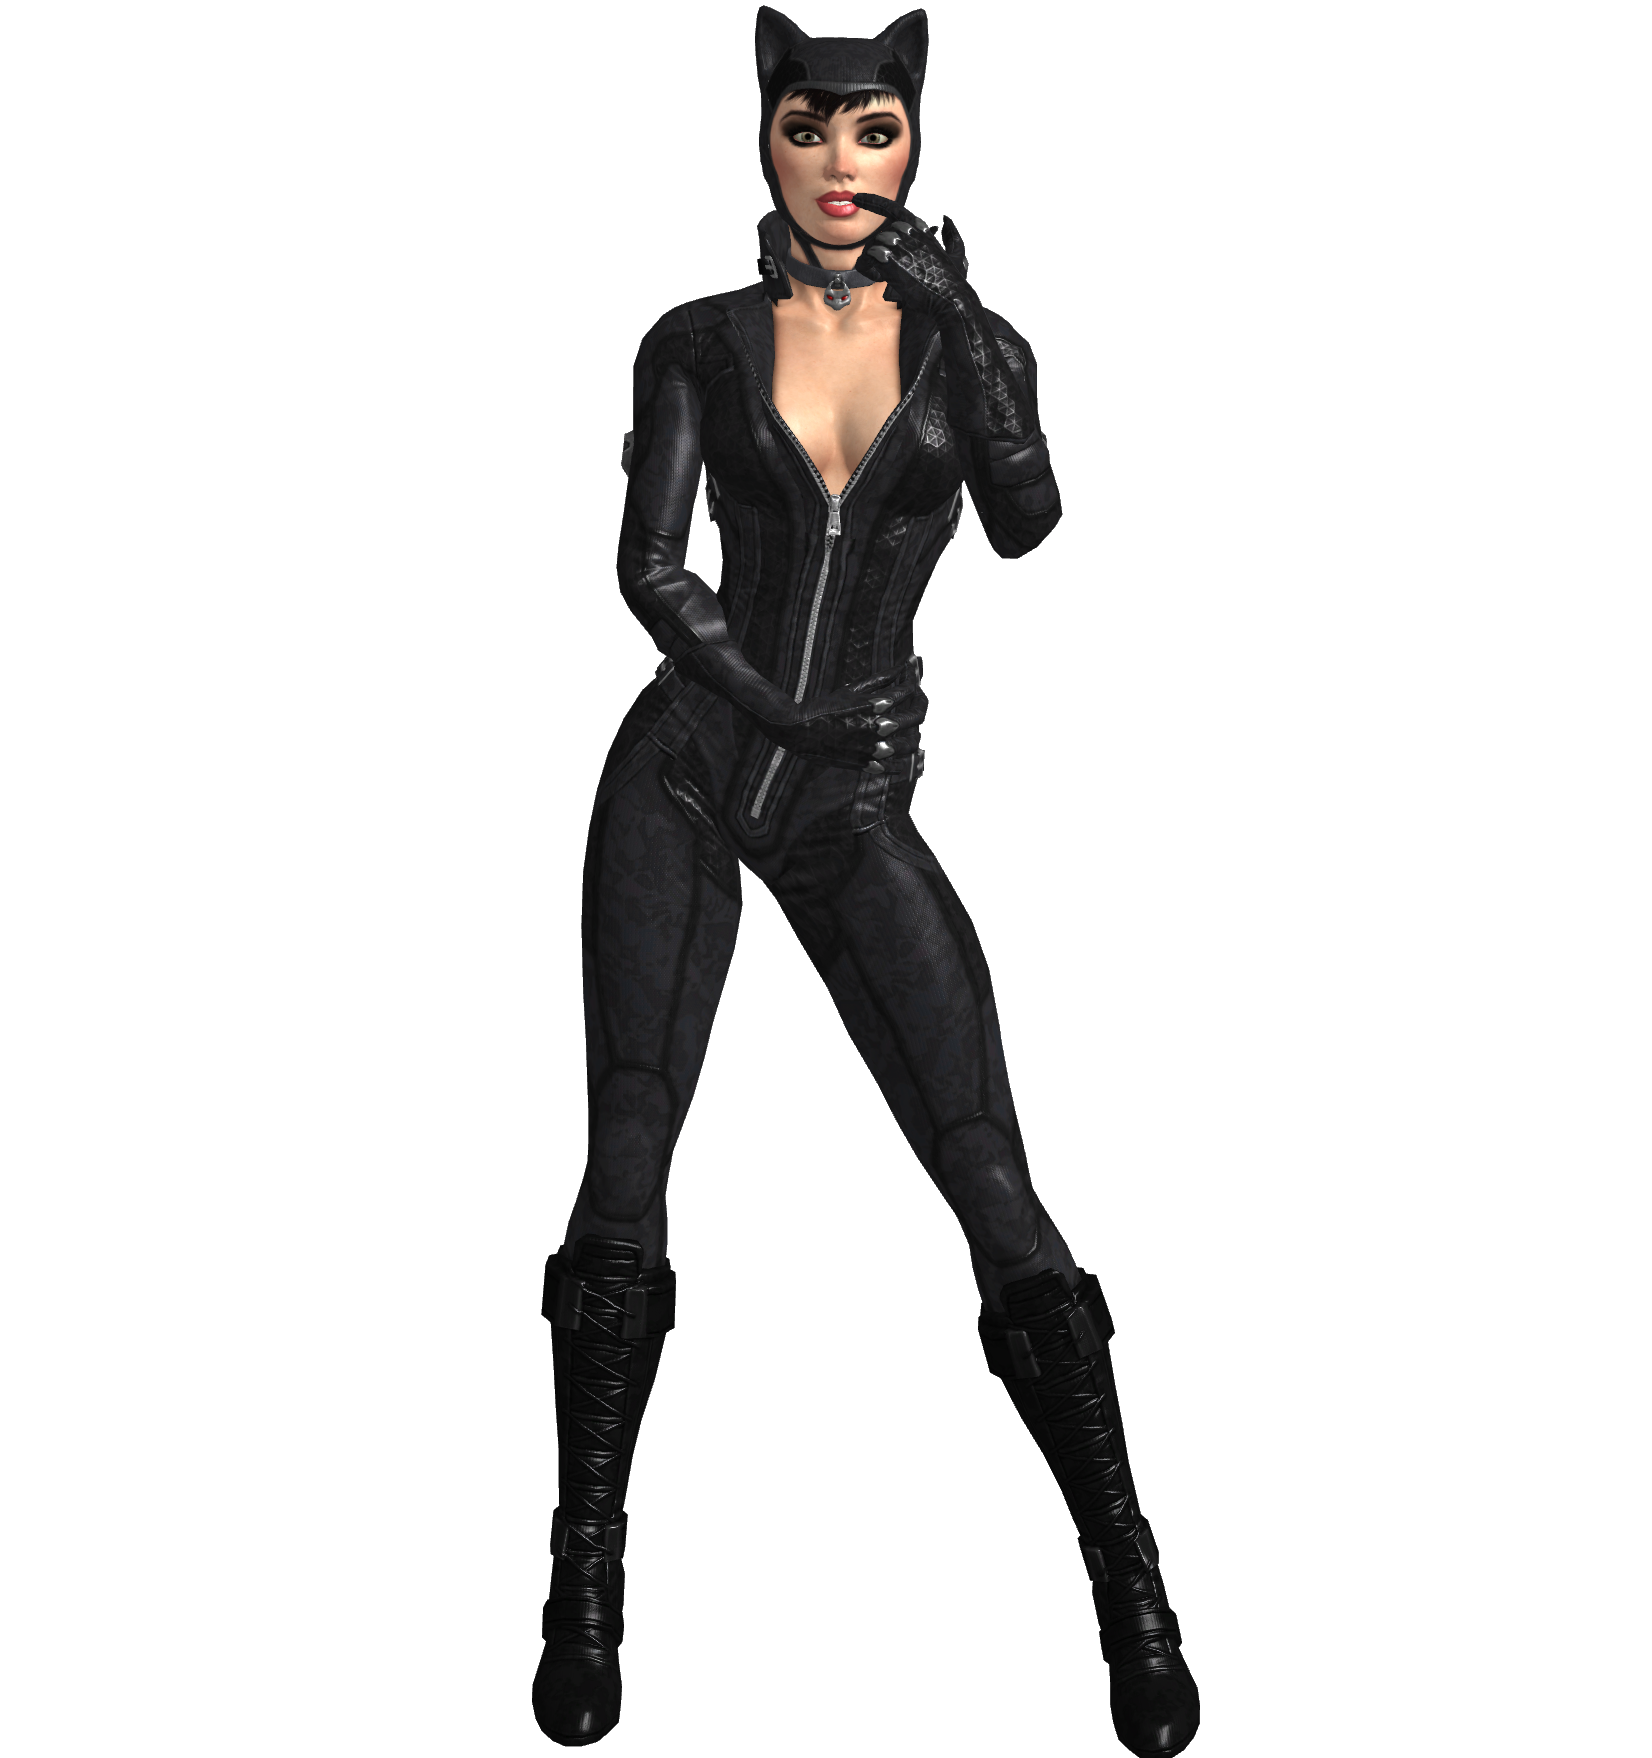 Catwoman PNG - 10430